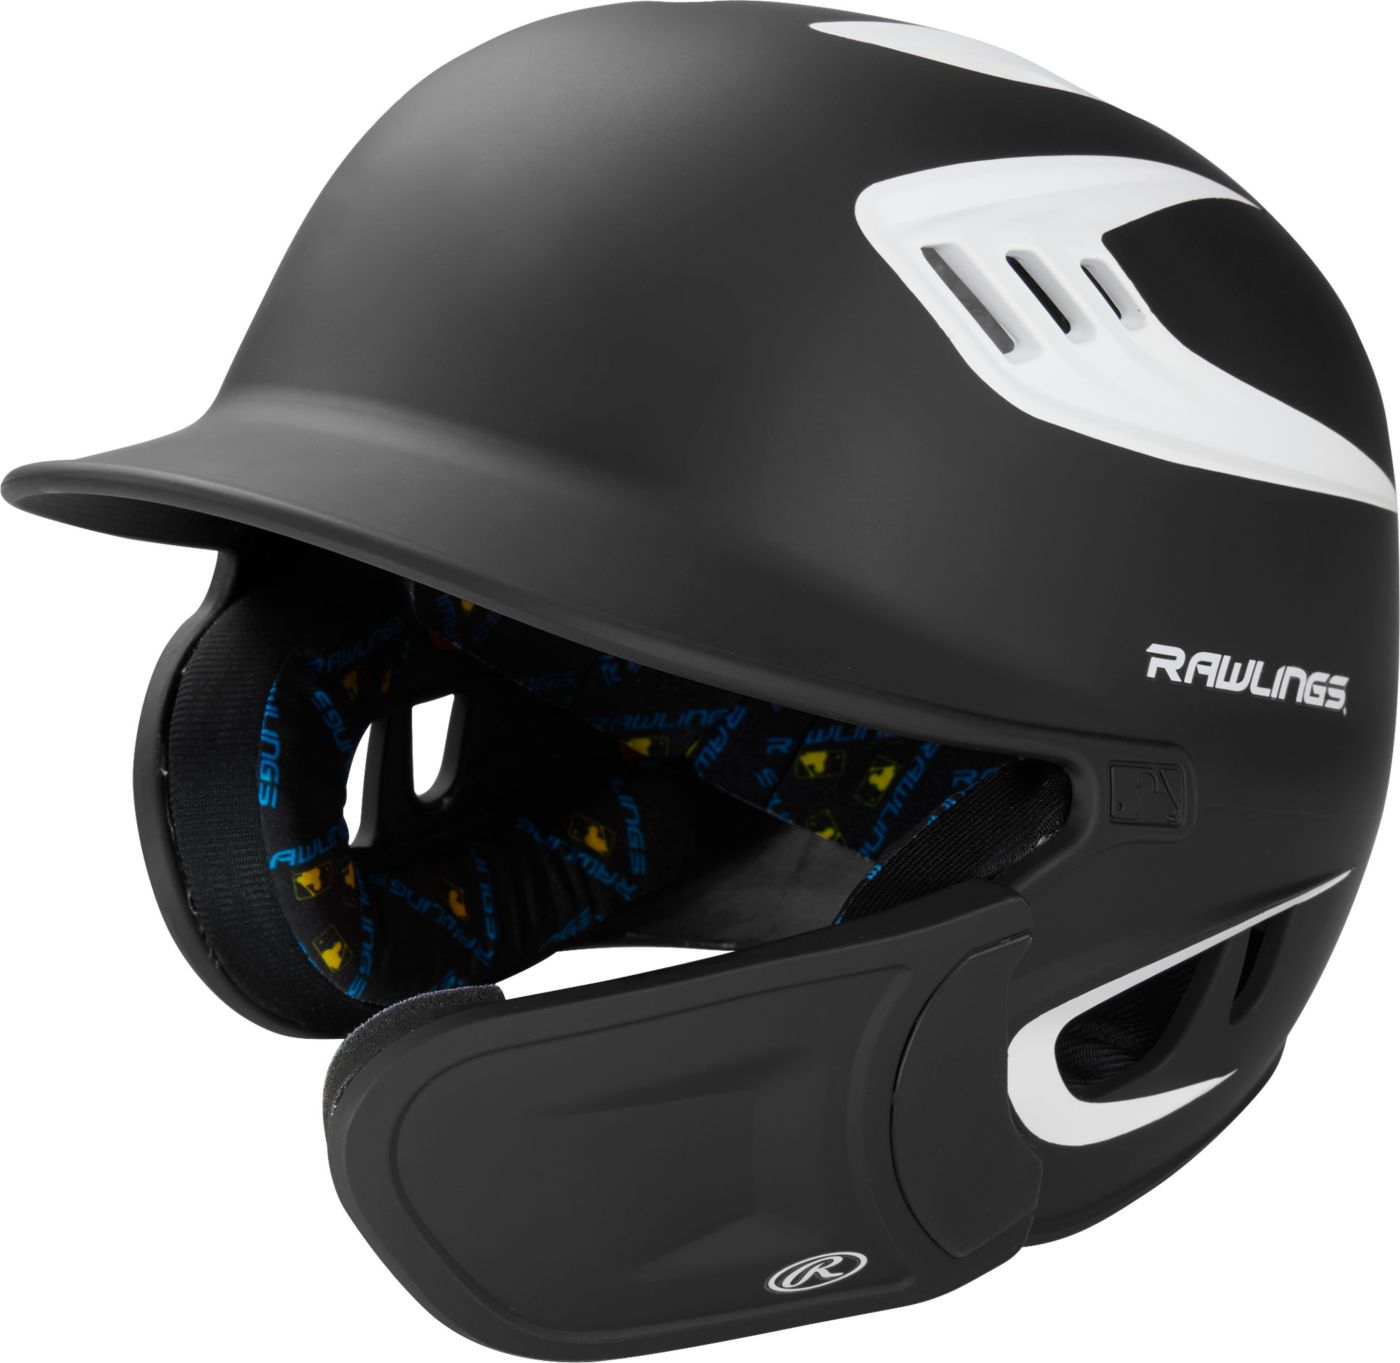 Rawlings Junior VELO Matte Batting Helmet w/ Extended Jaw Guard